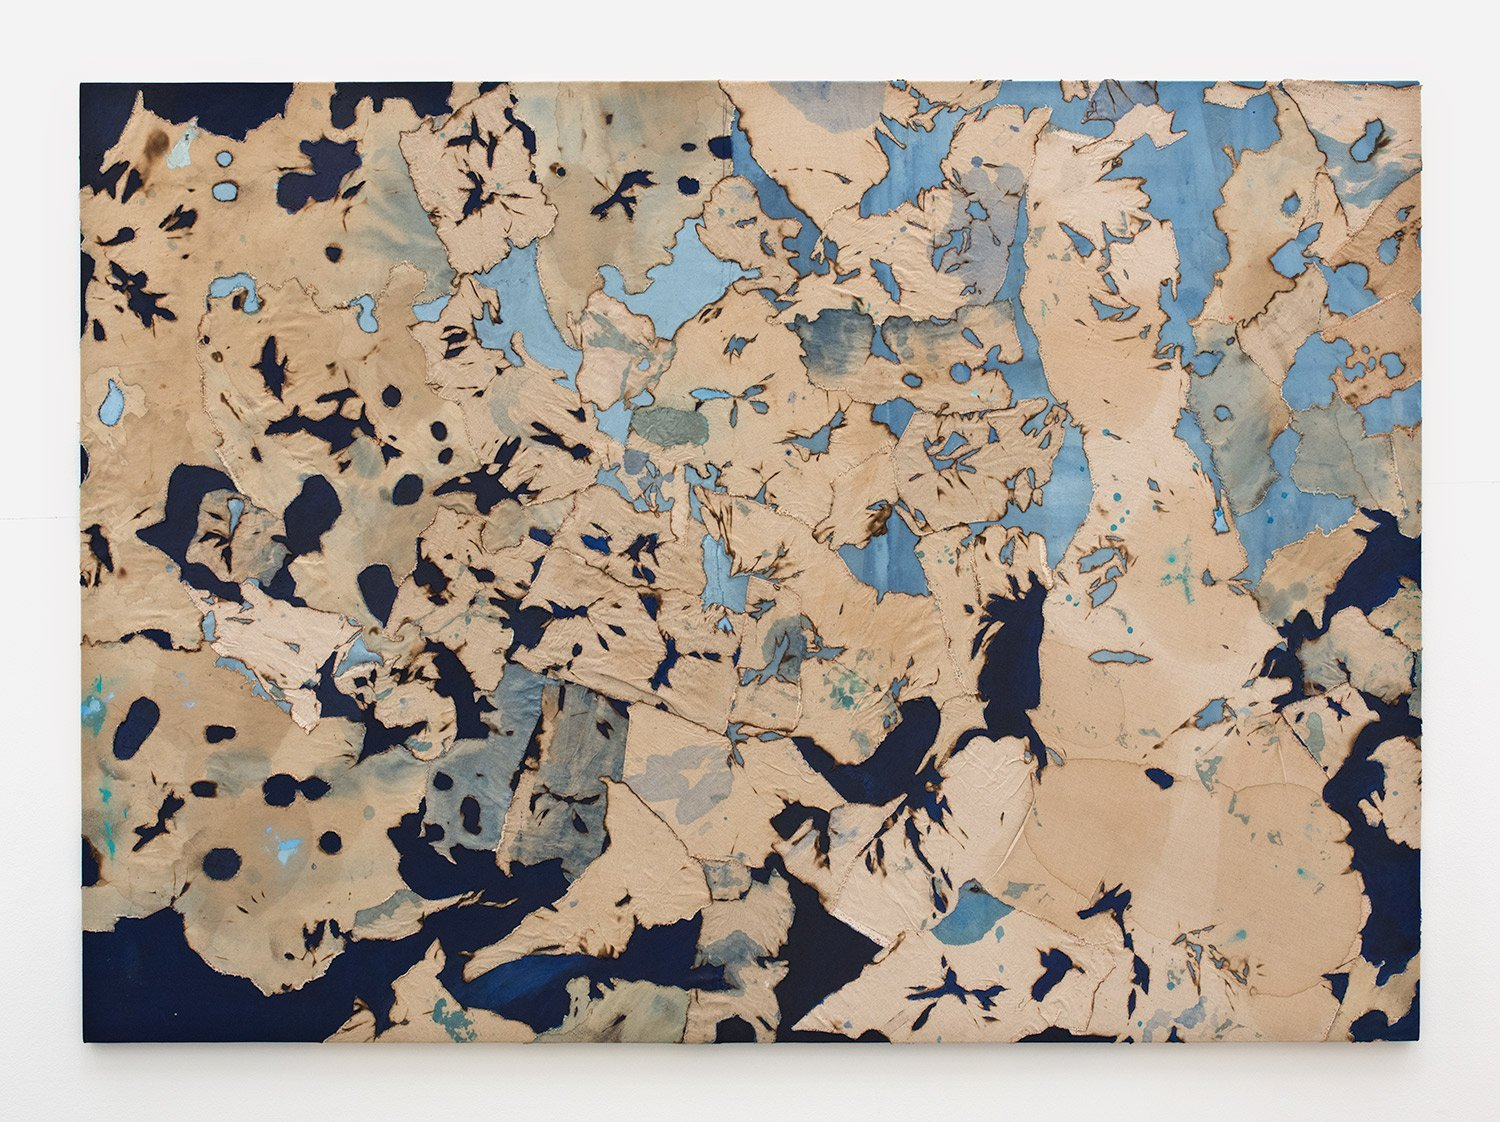 Samantha Thomas Cartography #6, 2016 Thread, acrylic and linen on canvas 60 x 84 inches